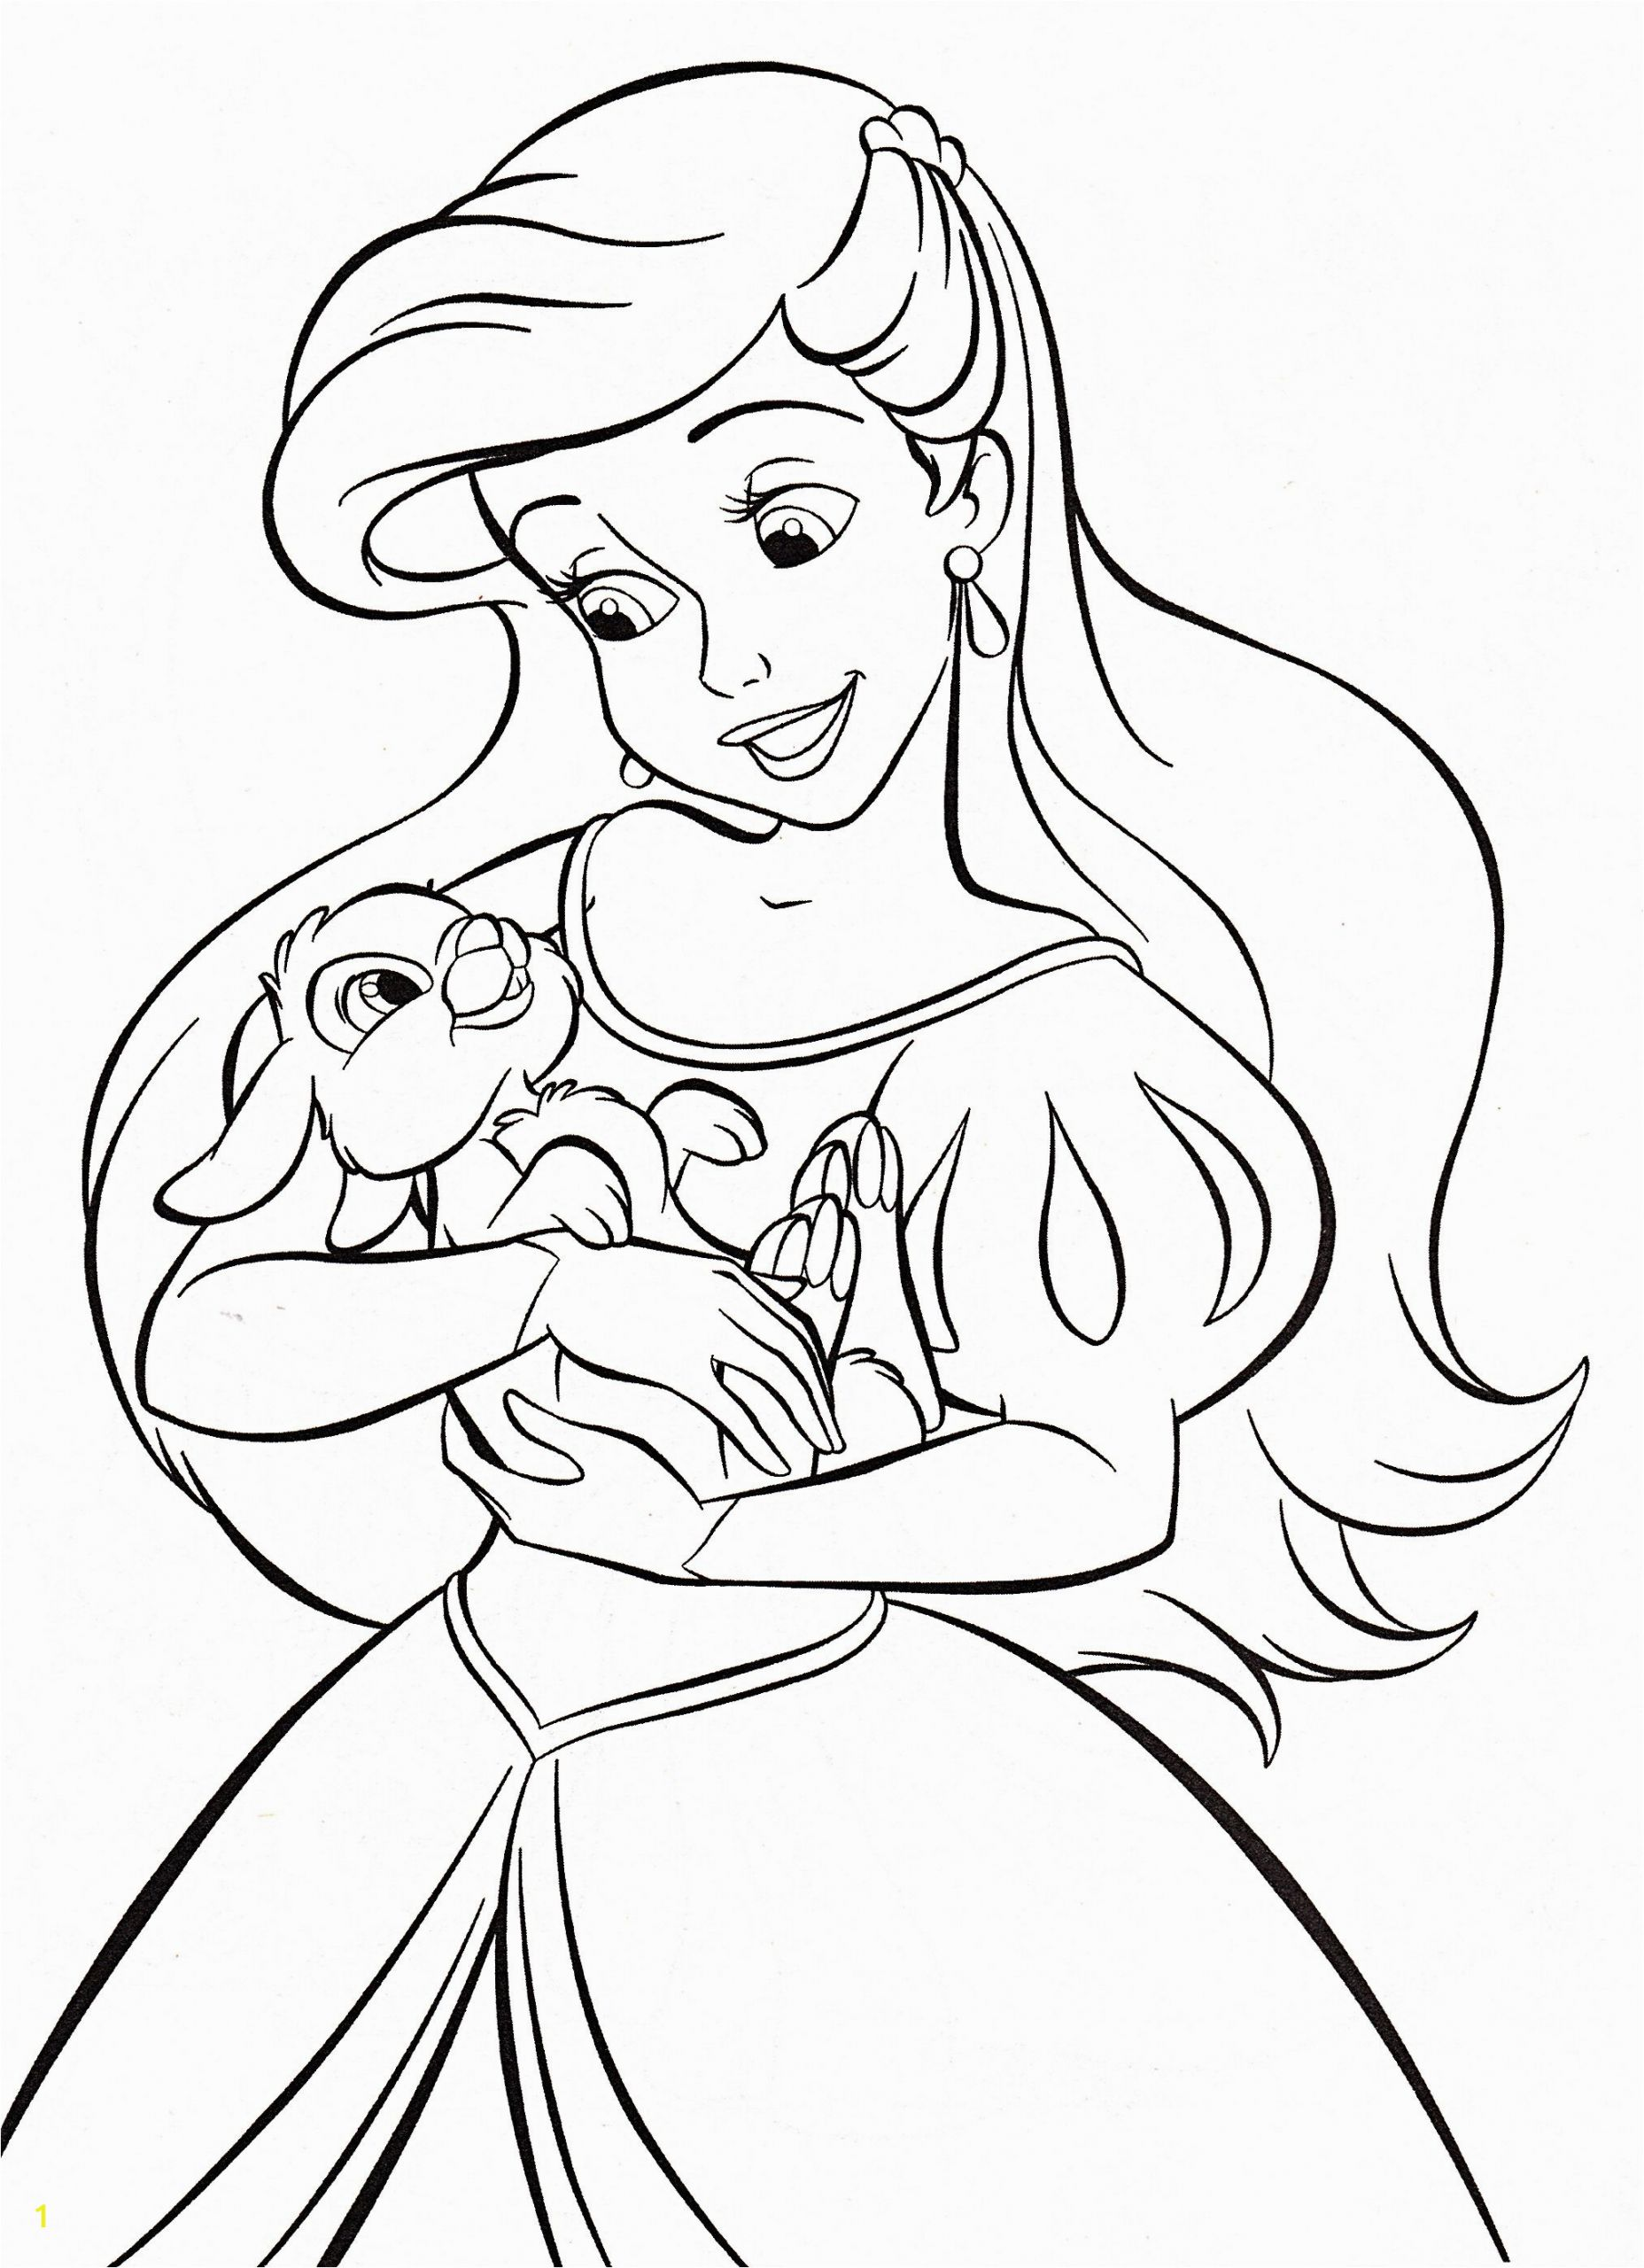 Coloring Pages Disney Princess Ariel Walt Disney Coloring Pages Princess Ariel Mit Bildern